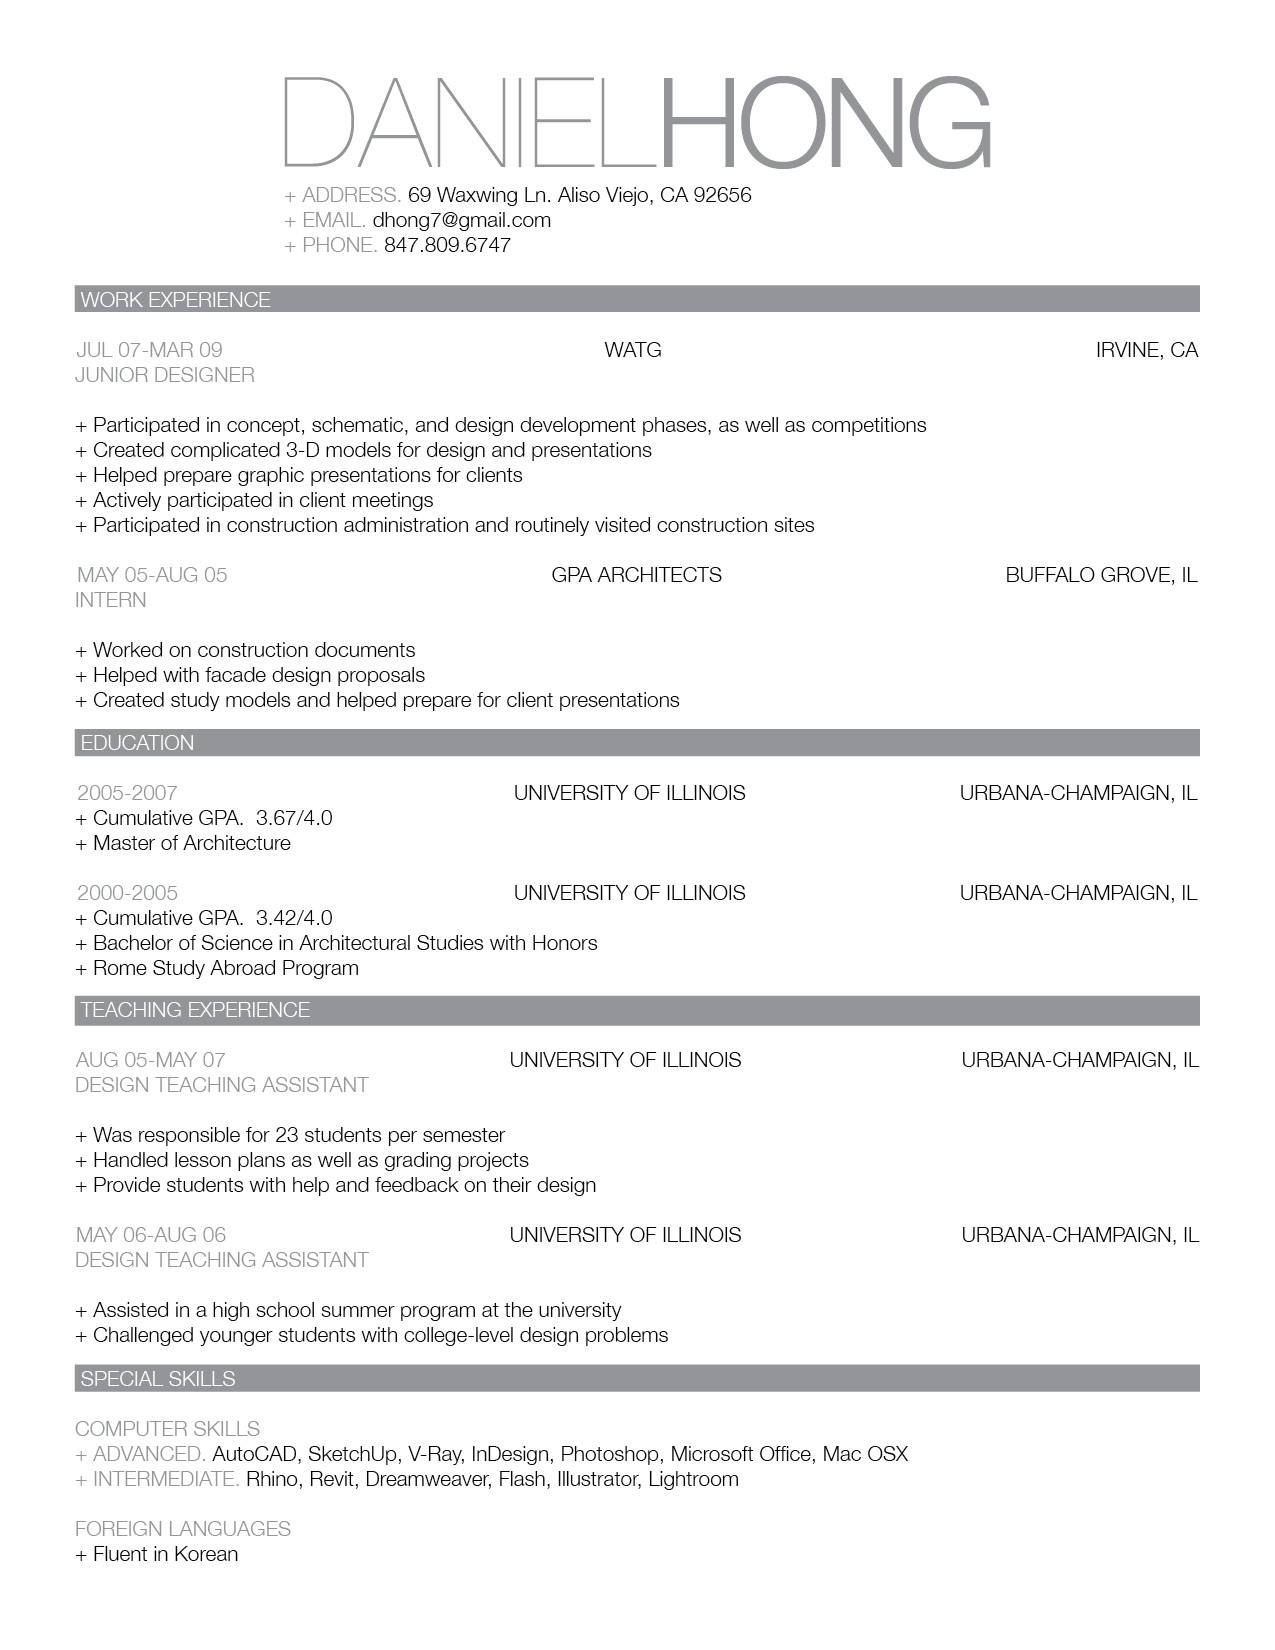 Opposenewapstandardsus  Scenic Resume Chronological Basic Basic Sample Resume Cover Letter  With Fair Simple  With Extraordinary Ruby On Rails Resume Also Reference List Resume In Addition Building A Resume Online And Free Professional Resume As Well As Sales Associate Sample Resume Additionally Pharmaceutical Resume From Writeupdonwebhomeipnet With Opposenewapstandardsus  Fair Resume Chronological Basic Basic Sample Resume Cover Letter  With Extraordinary Simple  And Scenic Ruby On Rails Resume Also Reference List Resume In Addition Building A Resume Online From Writeupdonwebhomeipnet